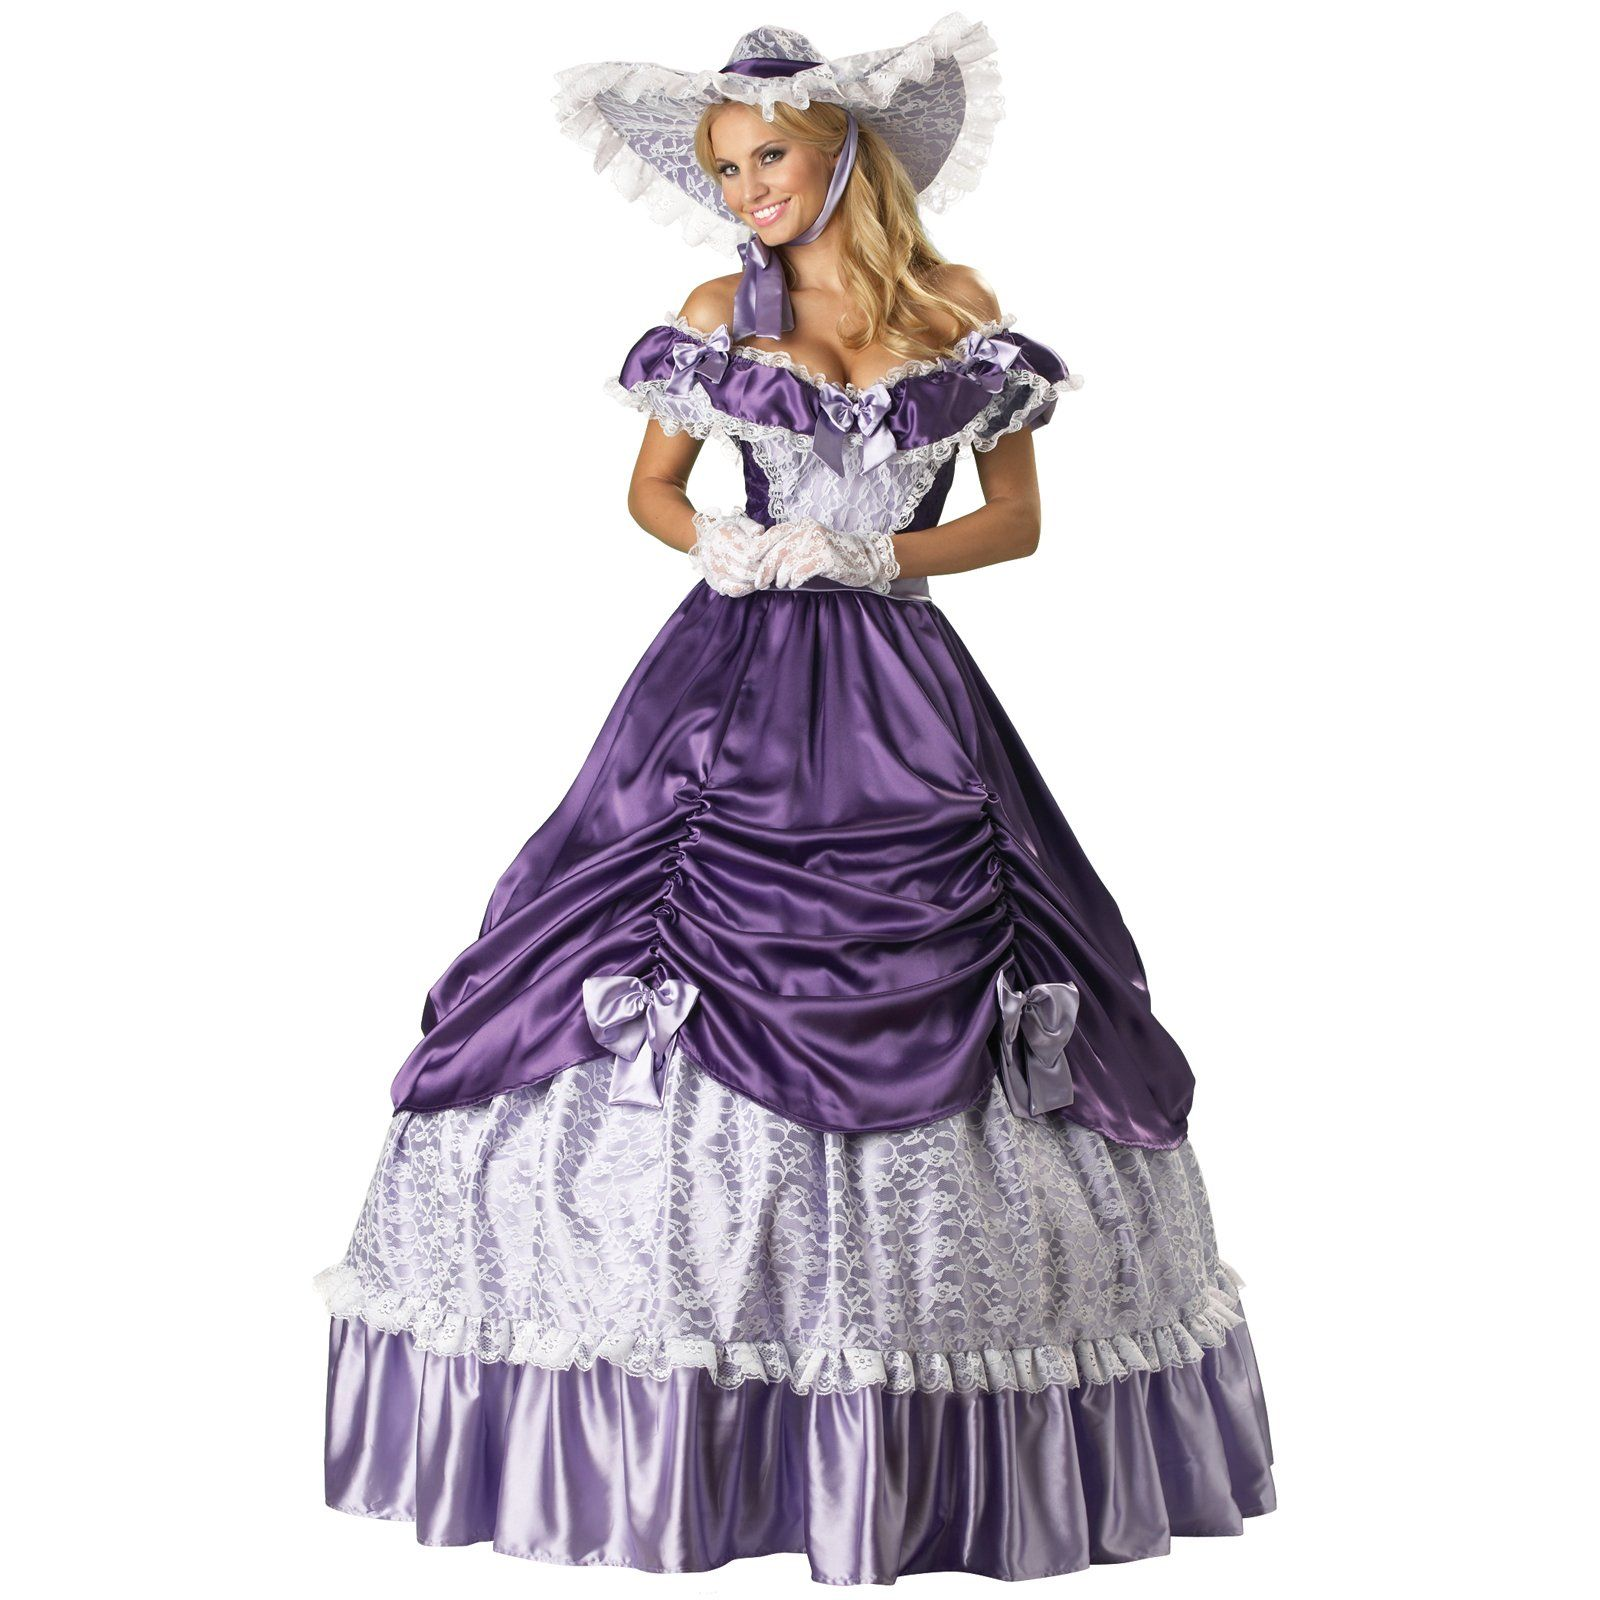 Dresses Loose On Sale At Reasonable Prices Buy New Southern Belle Costume Adult Victorian Dress Costumes For Women Purple Civil War Gowns